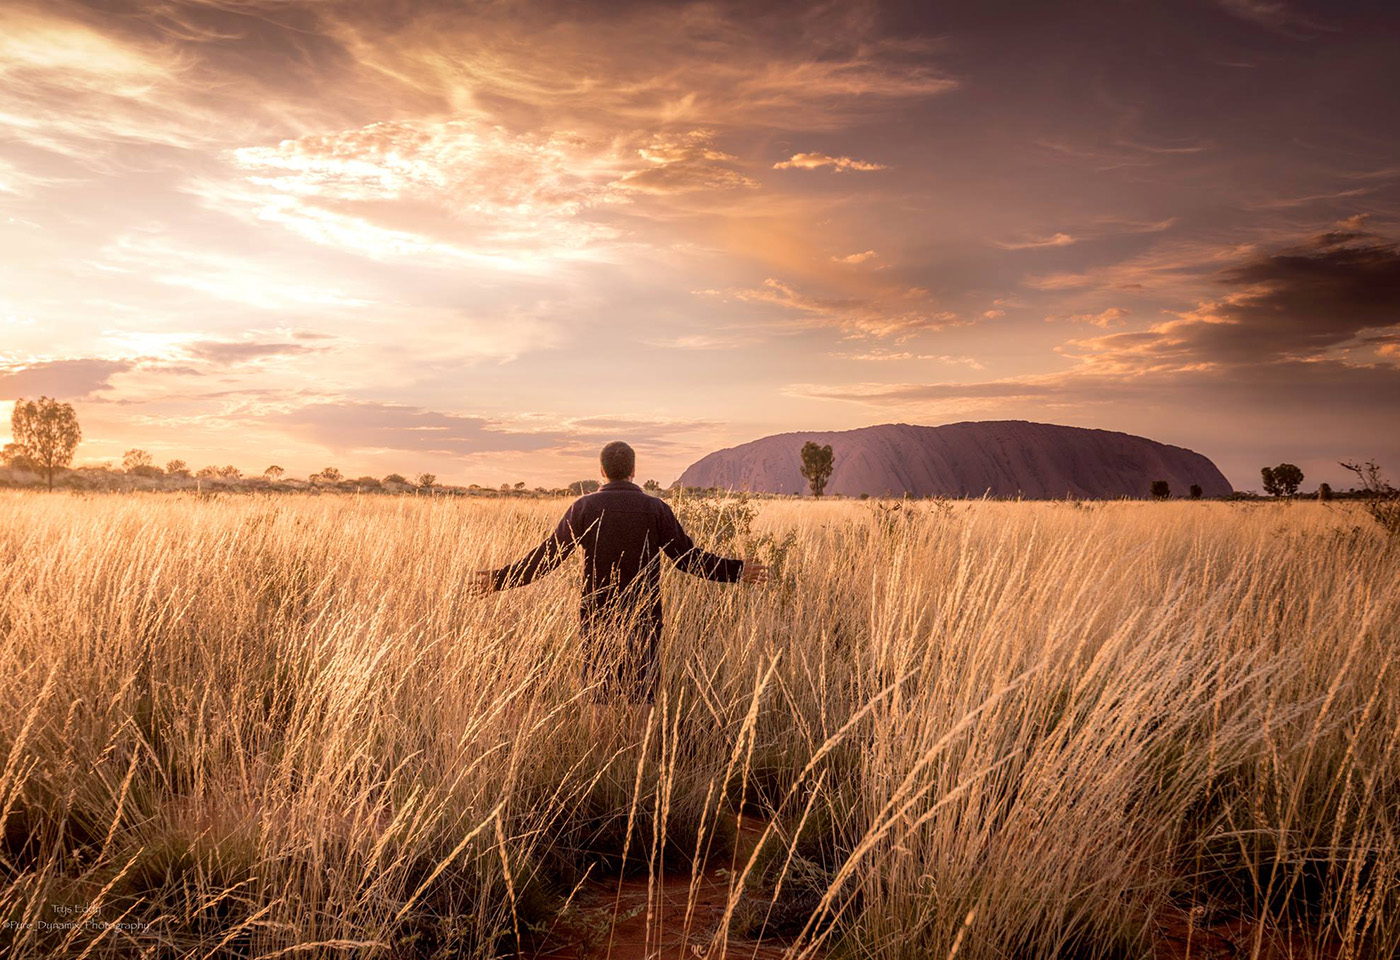 Landscape image of man standing in field